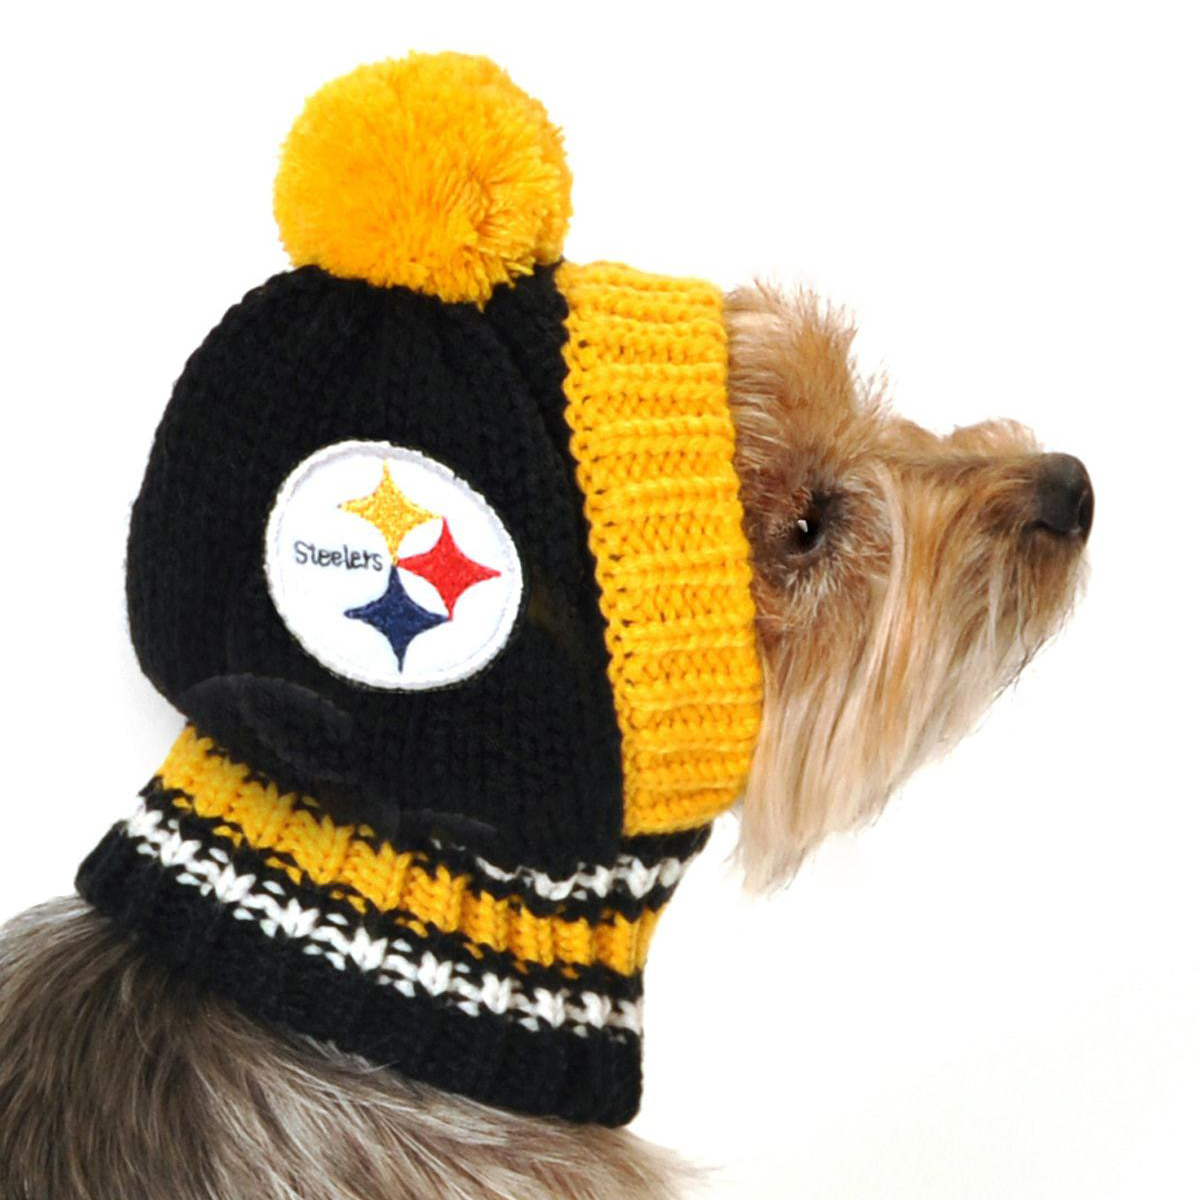 c357bd33 Pittsburgh Steelers Knit Dog Hat | BaxterBoo